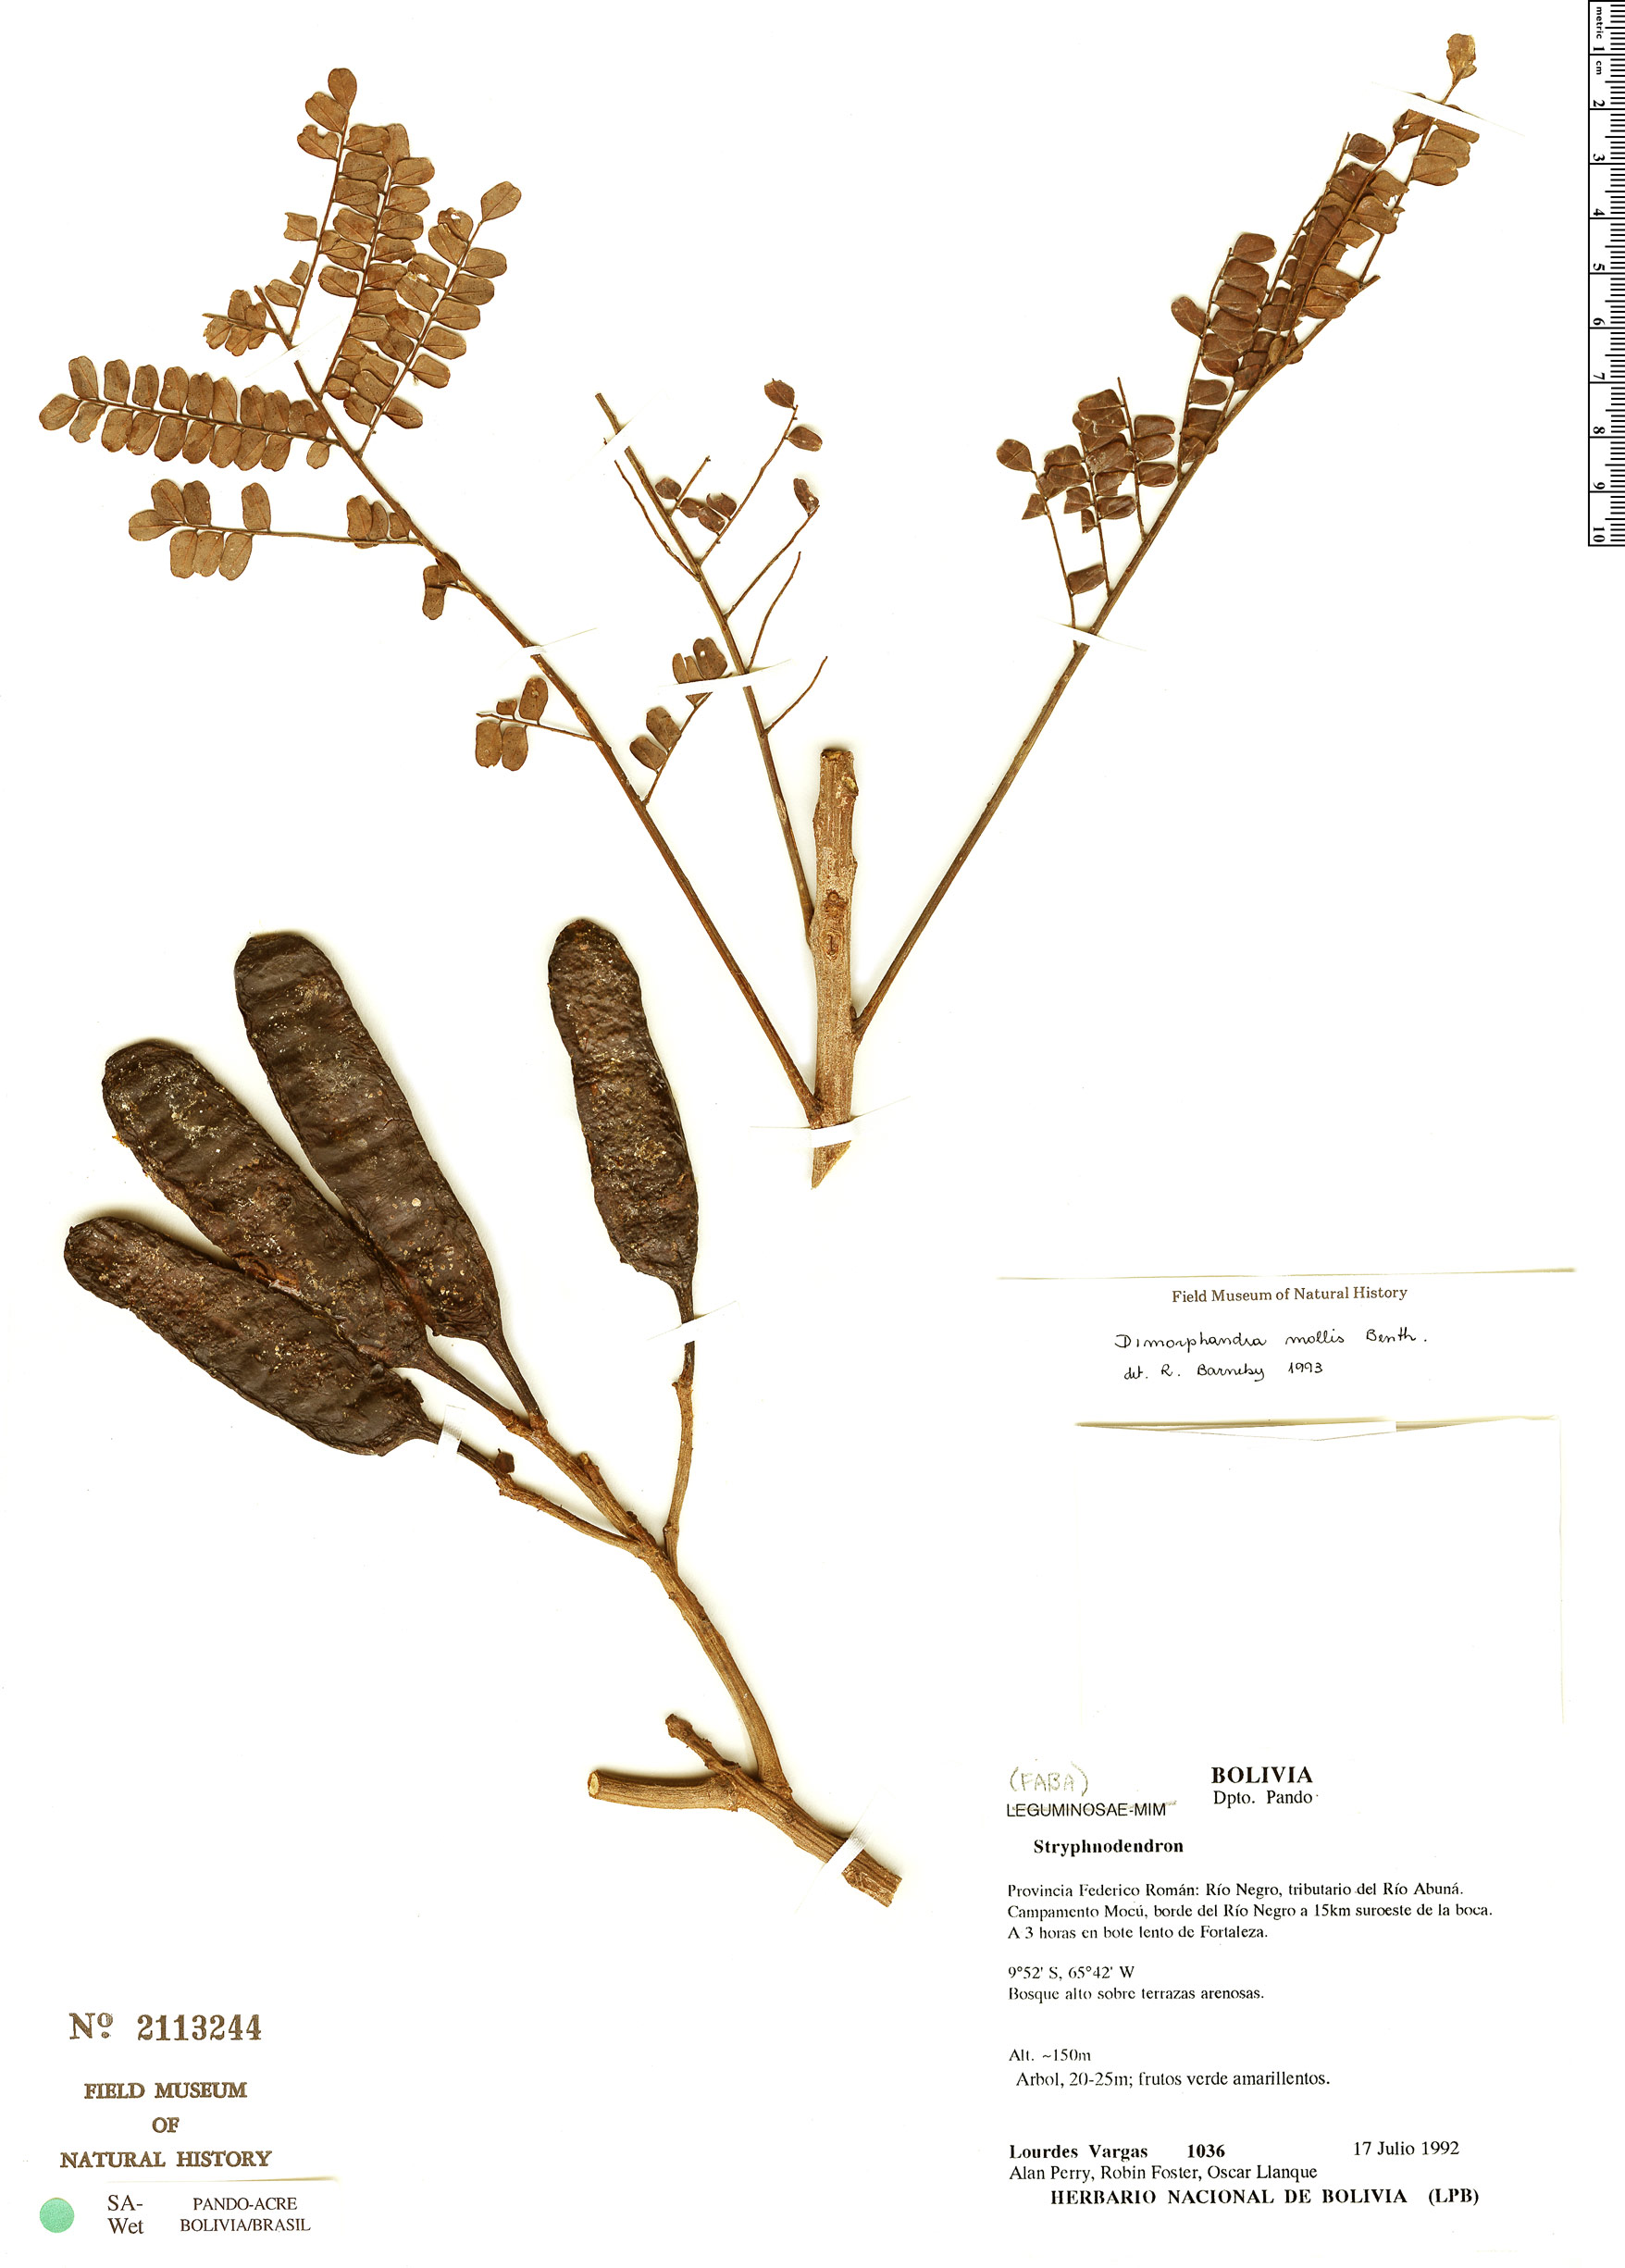 Specimen: Dimorphandra mollis